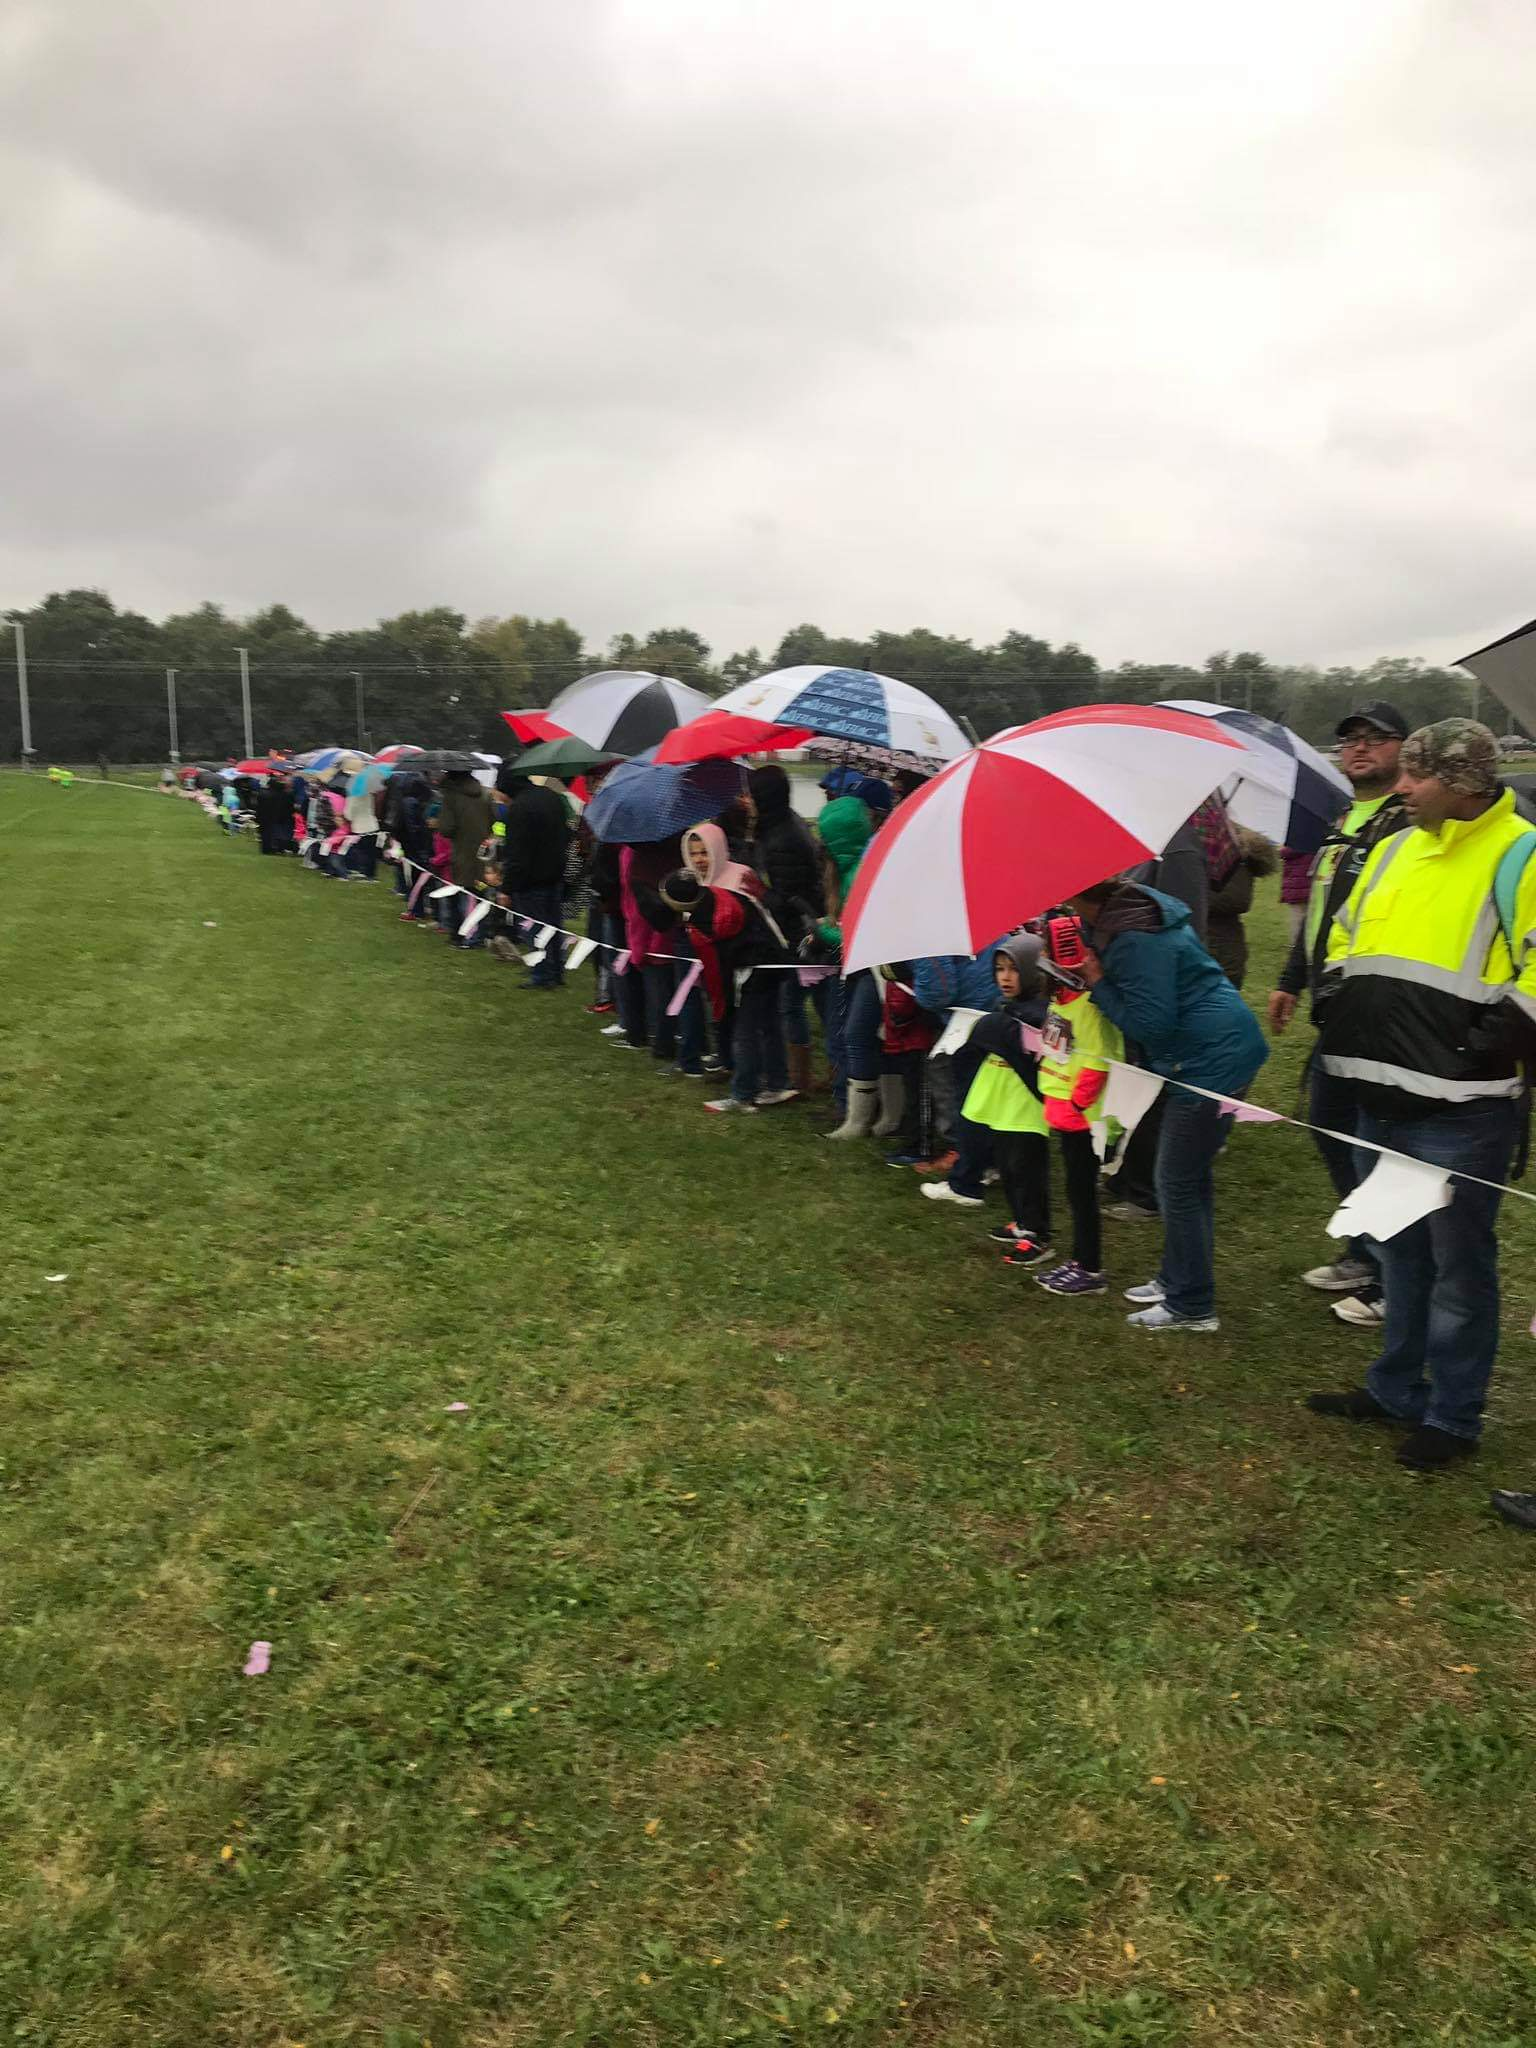 Parents with blankets and umbrellas cheer on the runners.